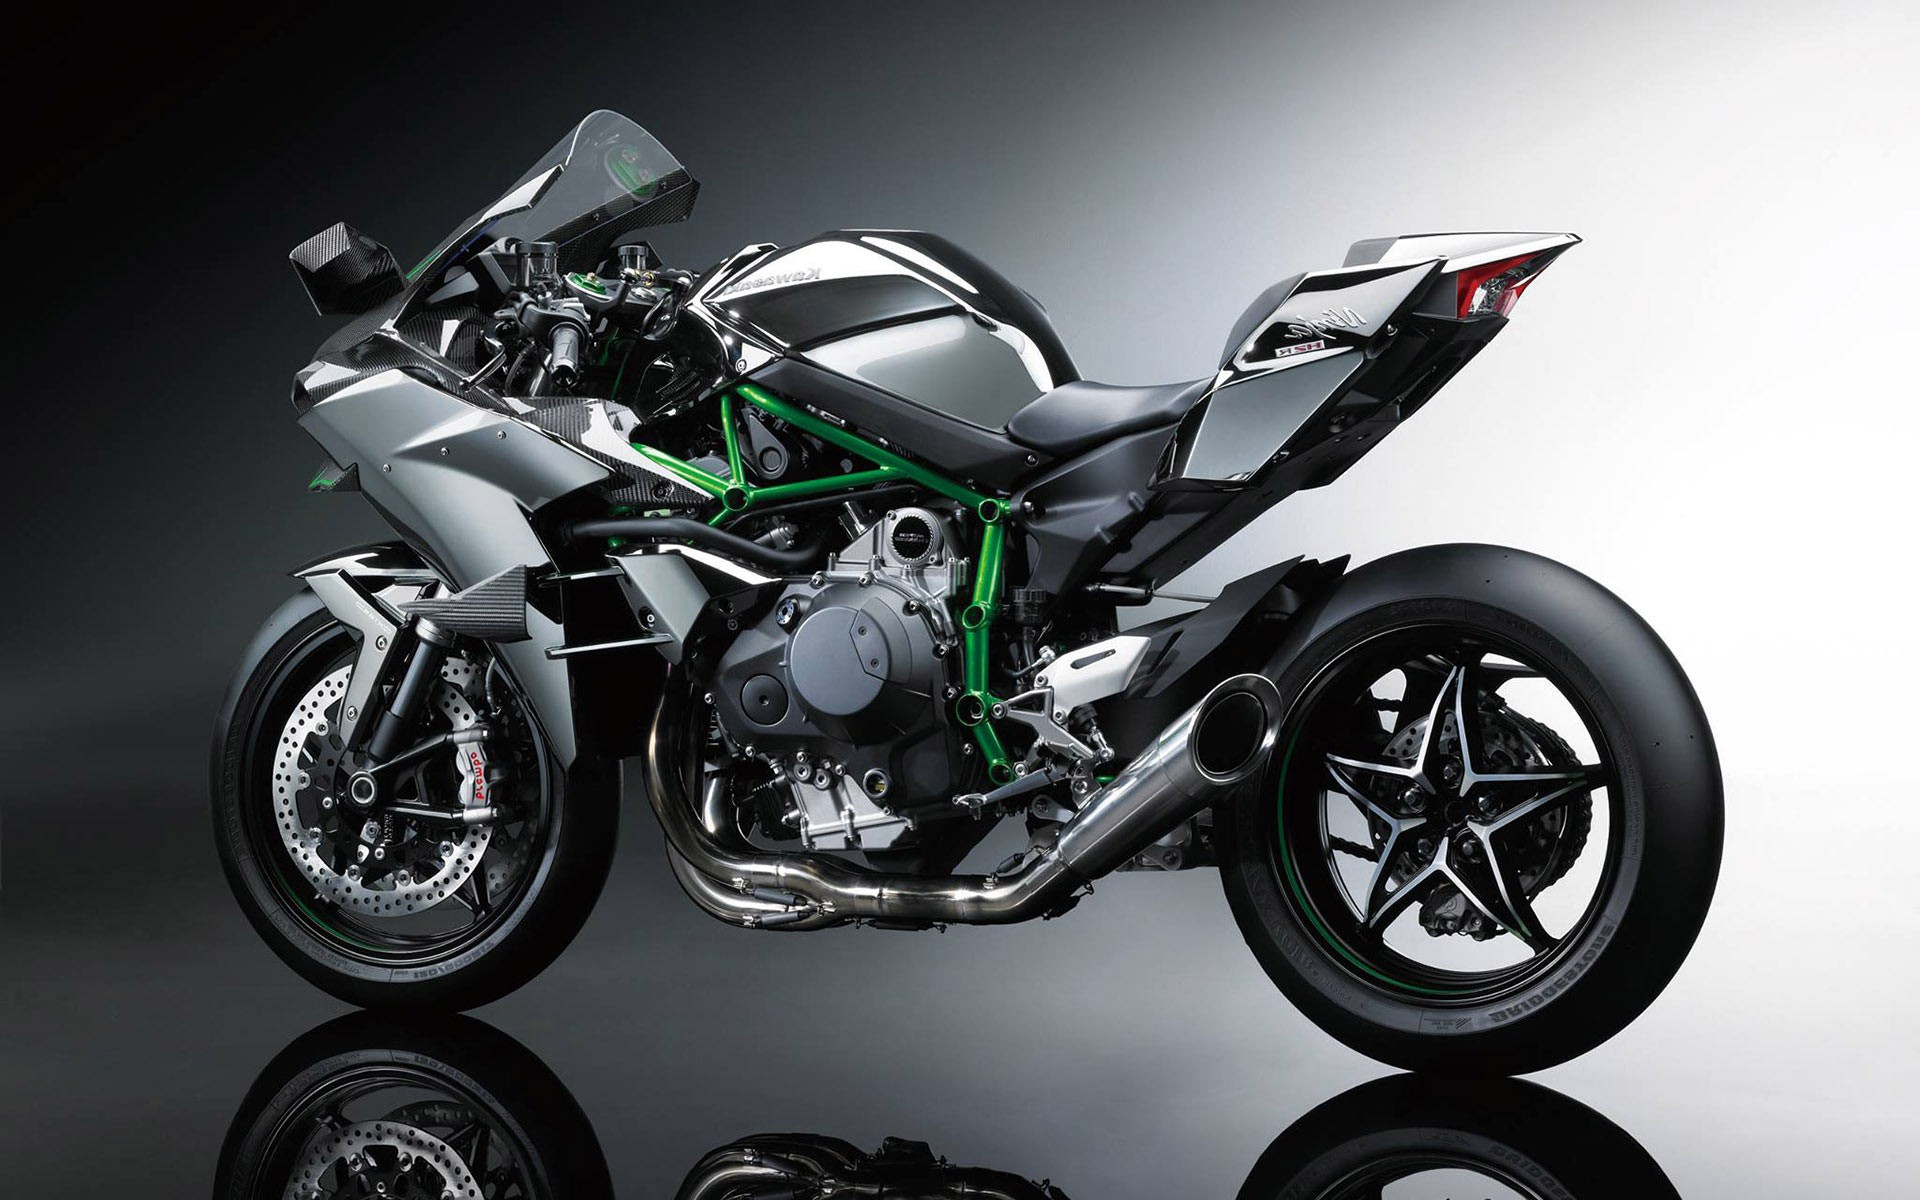 kawasaki ninja h2r wallpaper wallpapersafari. Black Bedroom Furniture Sets. Home Design Ideas